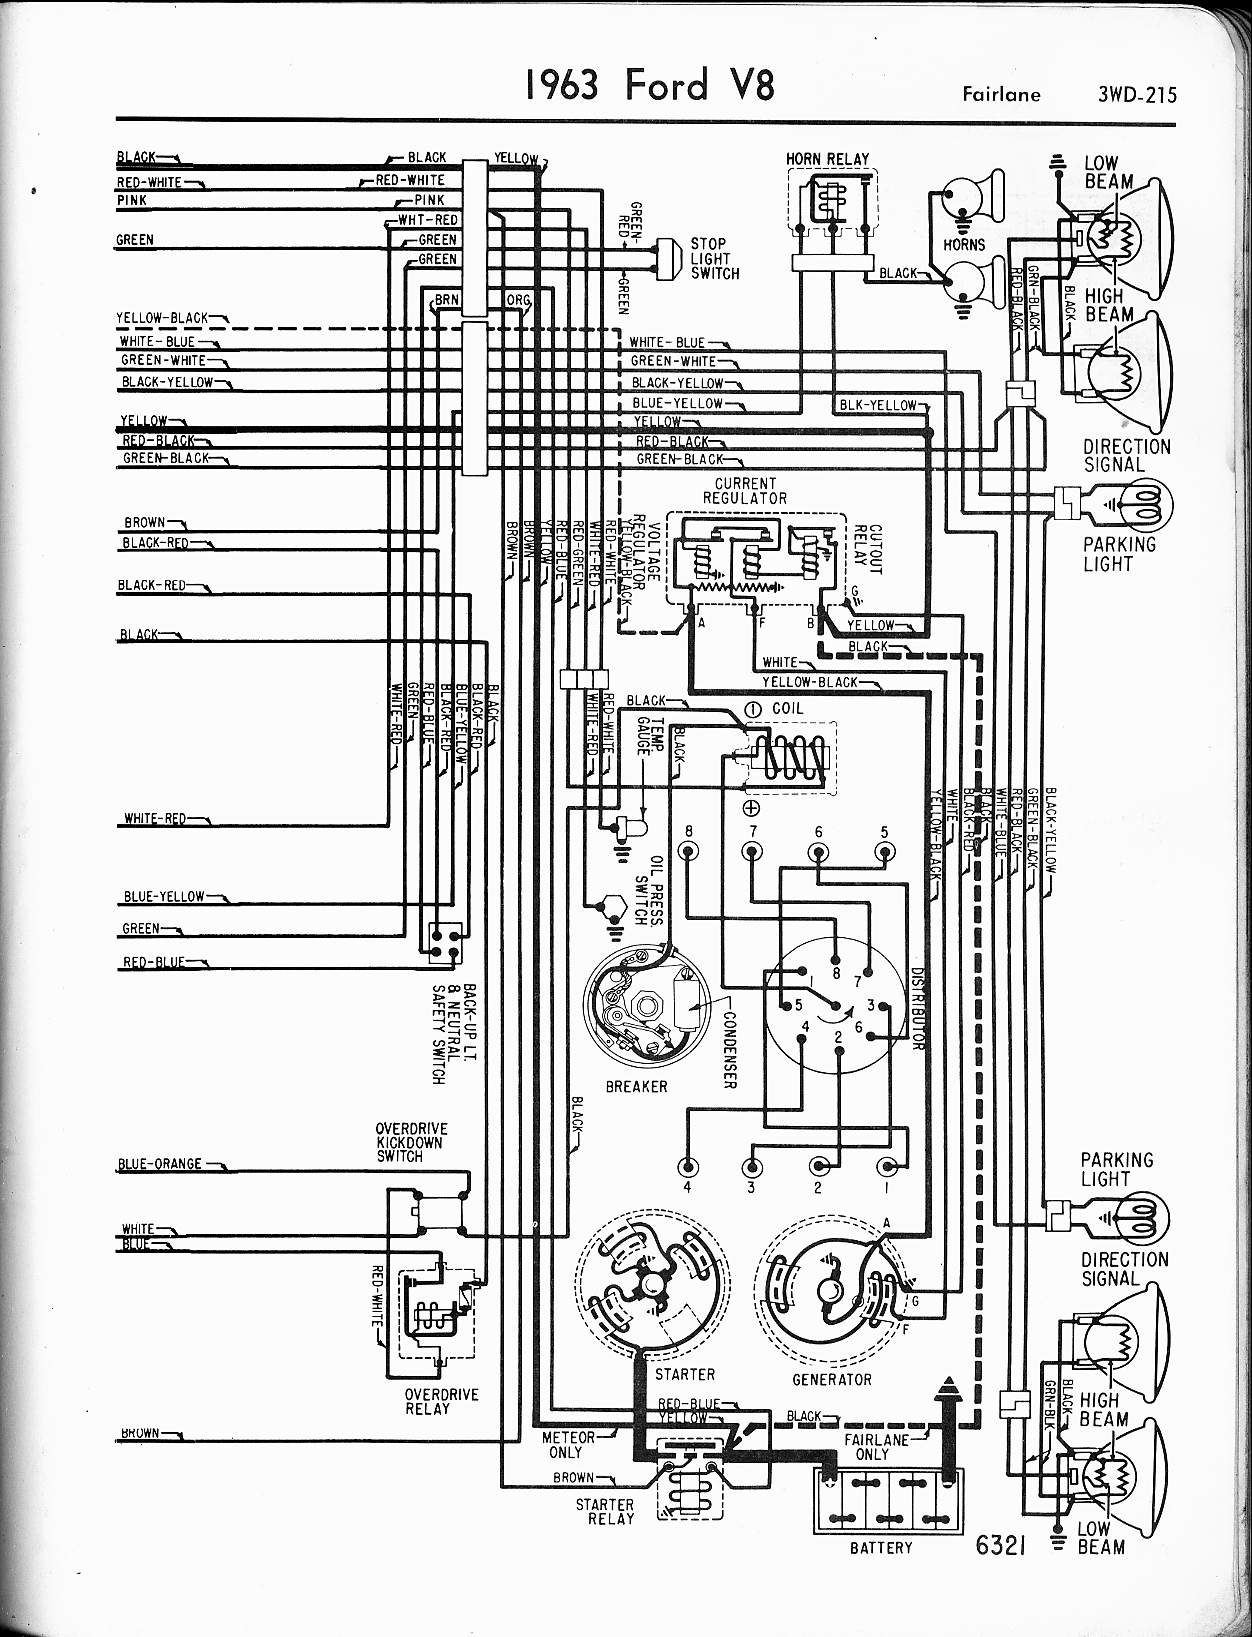 www.oldcarmanualproject.com/tOCMP/wiring/5765wirin...  Ford Ignition System Wiring Diagram on ford ignition module schematic, 1989 ford f250 ignition wiring diagram, 1976 ford ignition wiring diagram, ford electrical wiring diagrams, 1994 ford bronco ignition wiring diagram, ford cop ignition wiring diagrams, ford wiring harness diagrams, 1980 ford ignition wiring diagram, ford falcon wiring-diagram, ignition coil wiring diagram, ford 302 ignition wiring diagram, msd ignition wiring diagram, ford tractor ignition switch wiring, ford ranger 2.9 wiring-diagram, ford ignition solenoid, basic ignition system diagram, 1979 ford ignition wiring diagram, 1968 ford f100 ignition wiring diagram, 1974 ford ignition wiring diagram, ford ignition wiring diagram fuel,